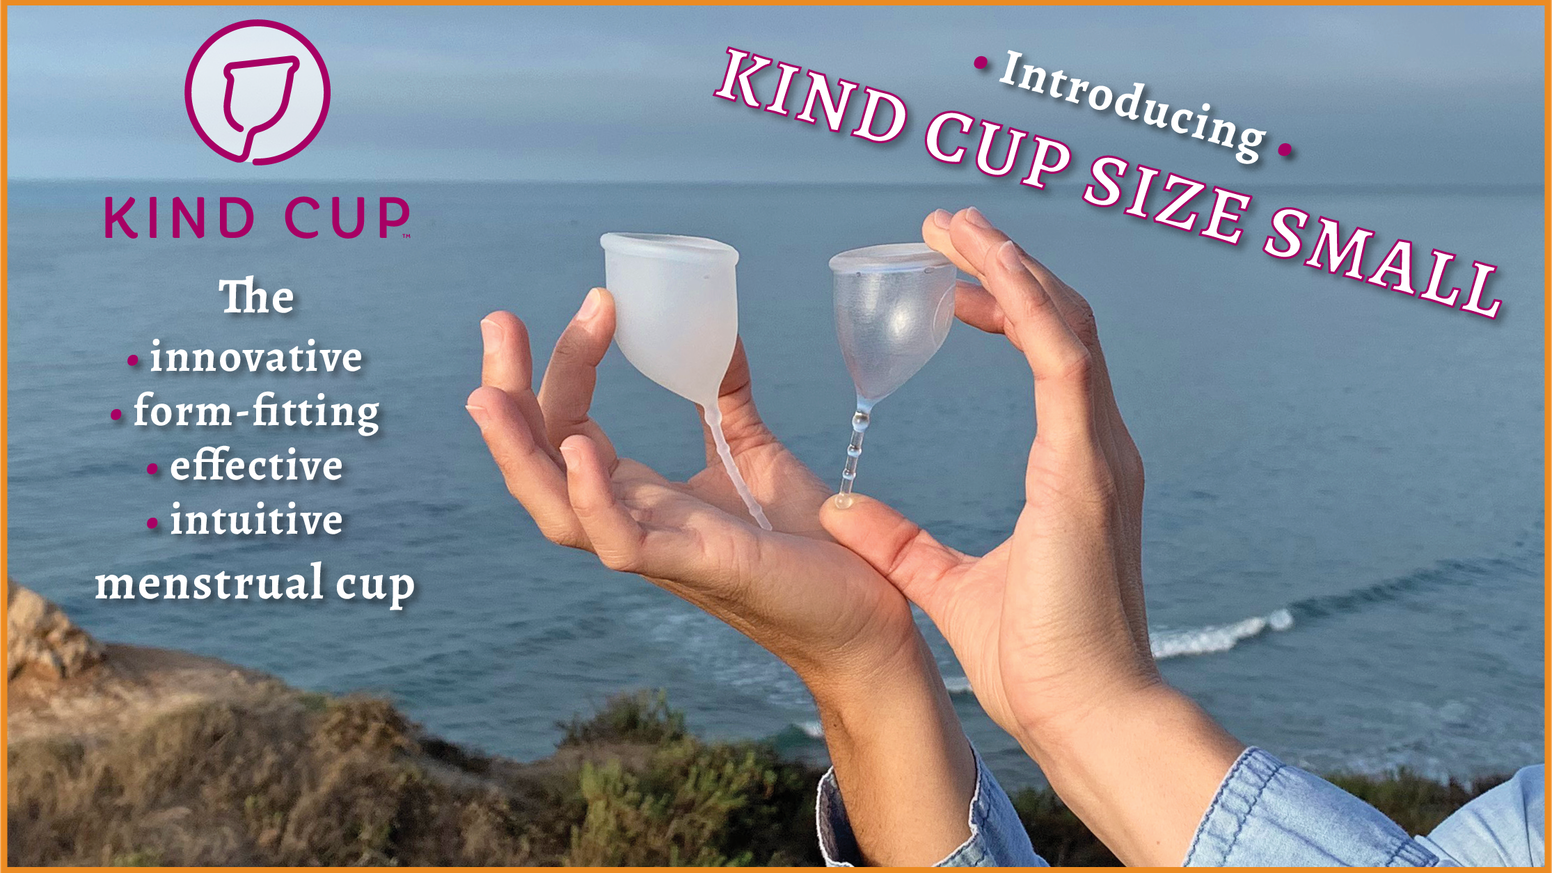 Looking for a menstrual cup that is comfortable, effective, and intuitive to use? Our form-fitting design is creating a new standard.